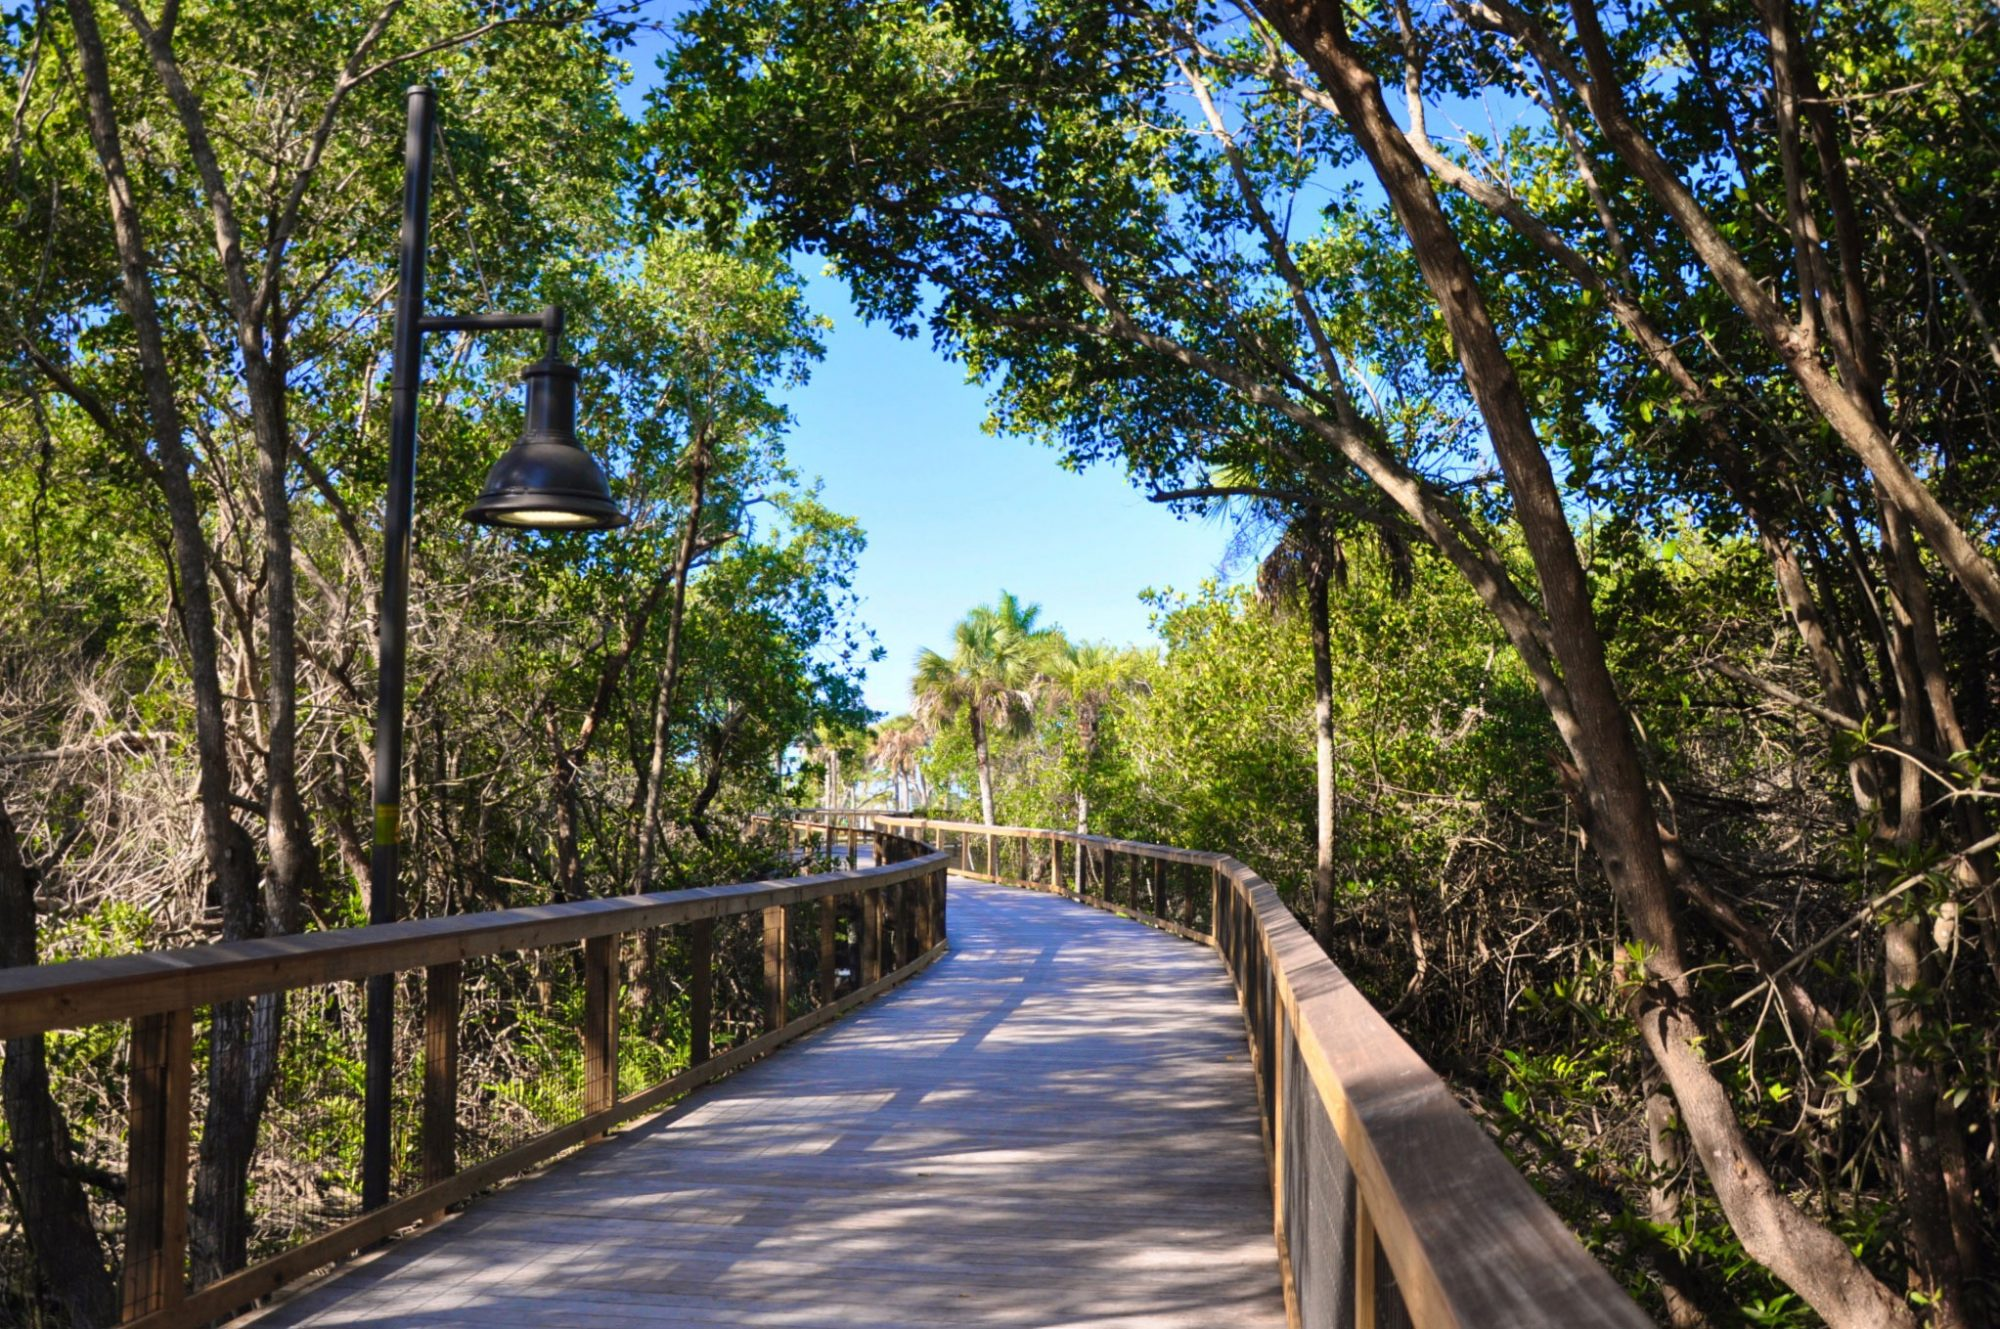 Gordon River Greenway in Naples